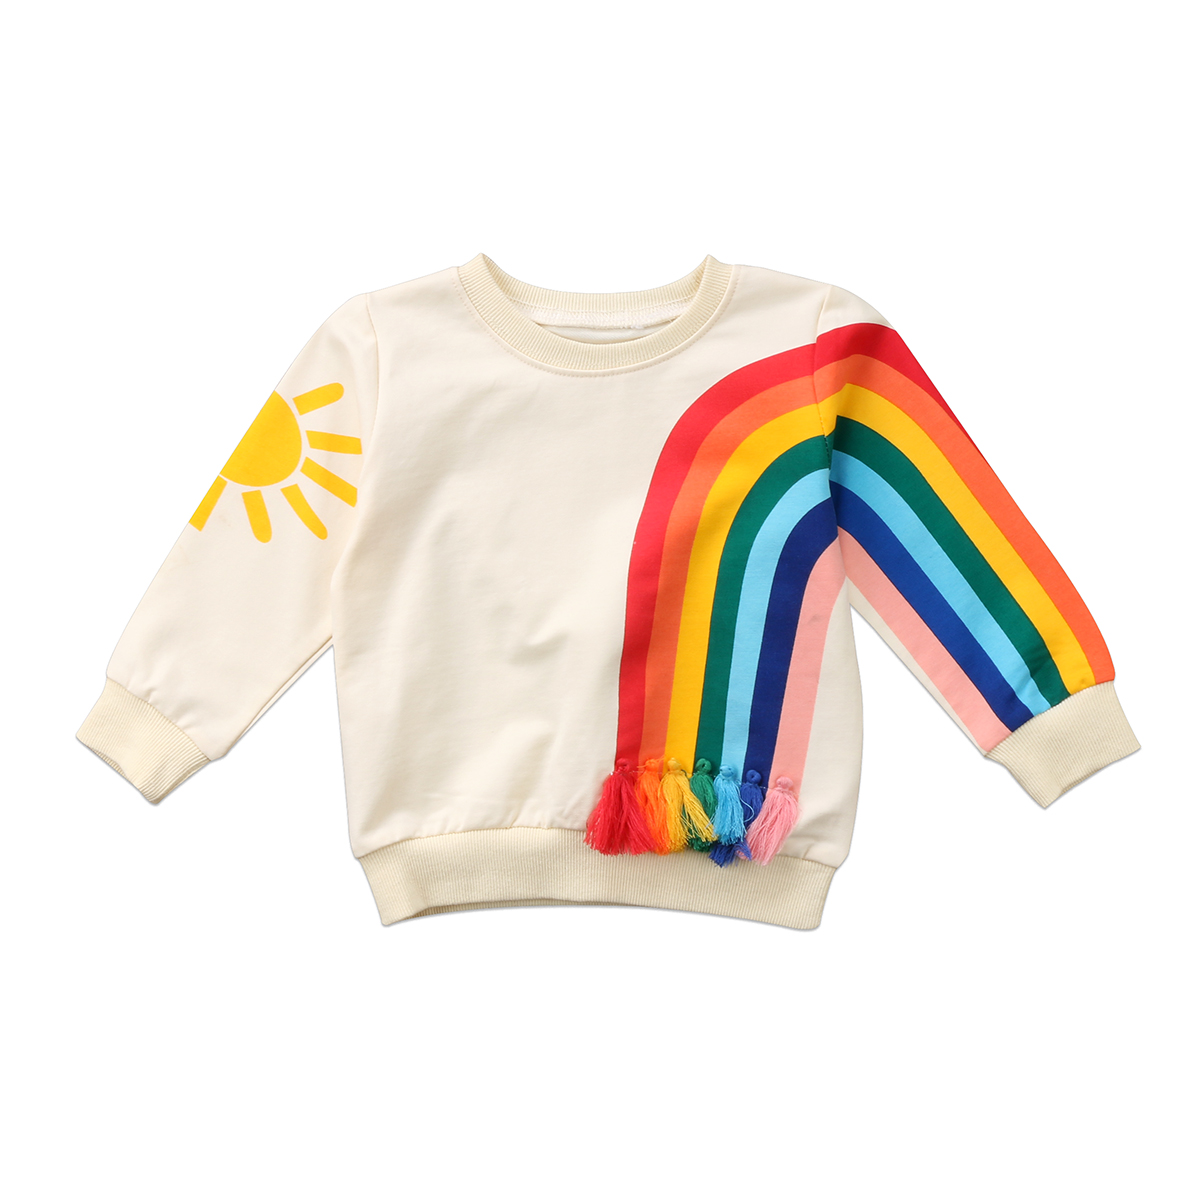 T-Shirt-Tops Rainbow Stripes Clothing Baby-Girl Autumn Kid Spring Tassels Babies-Color